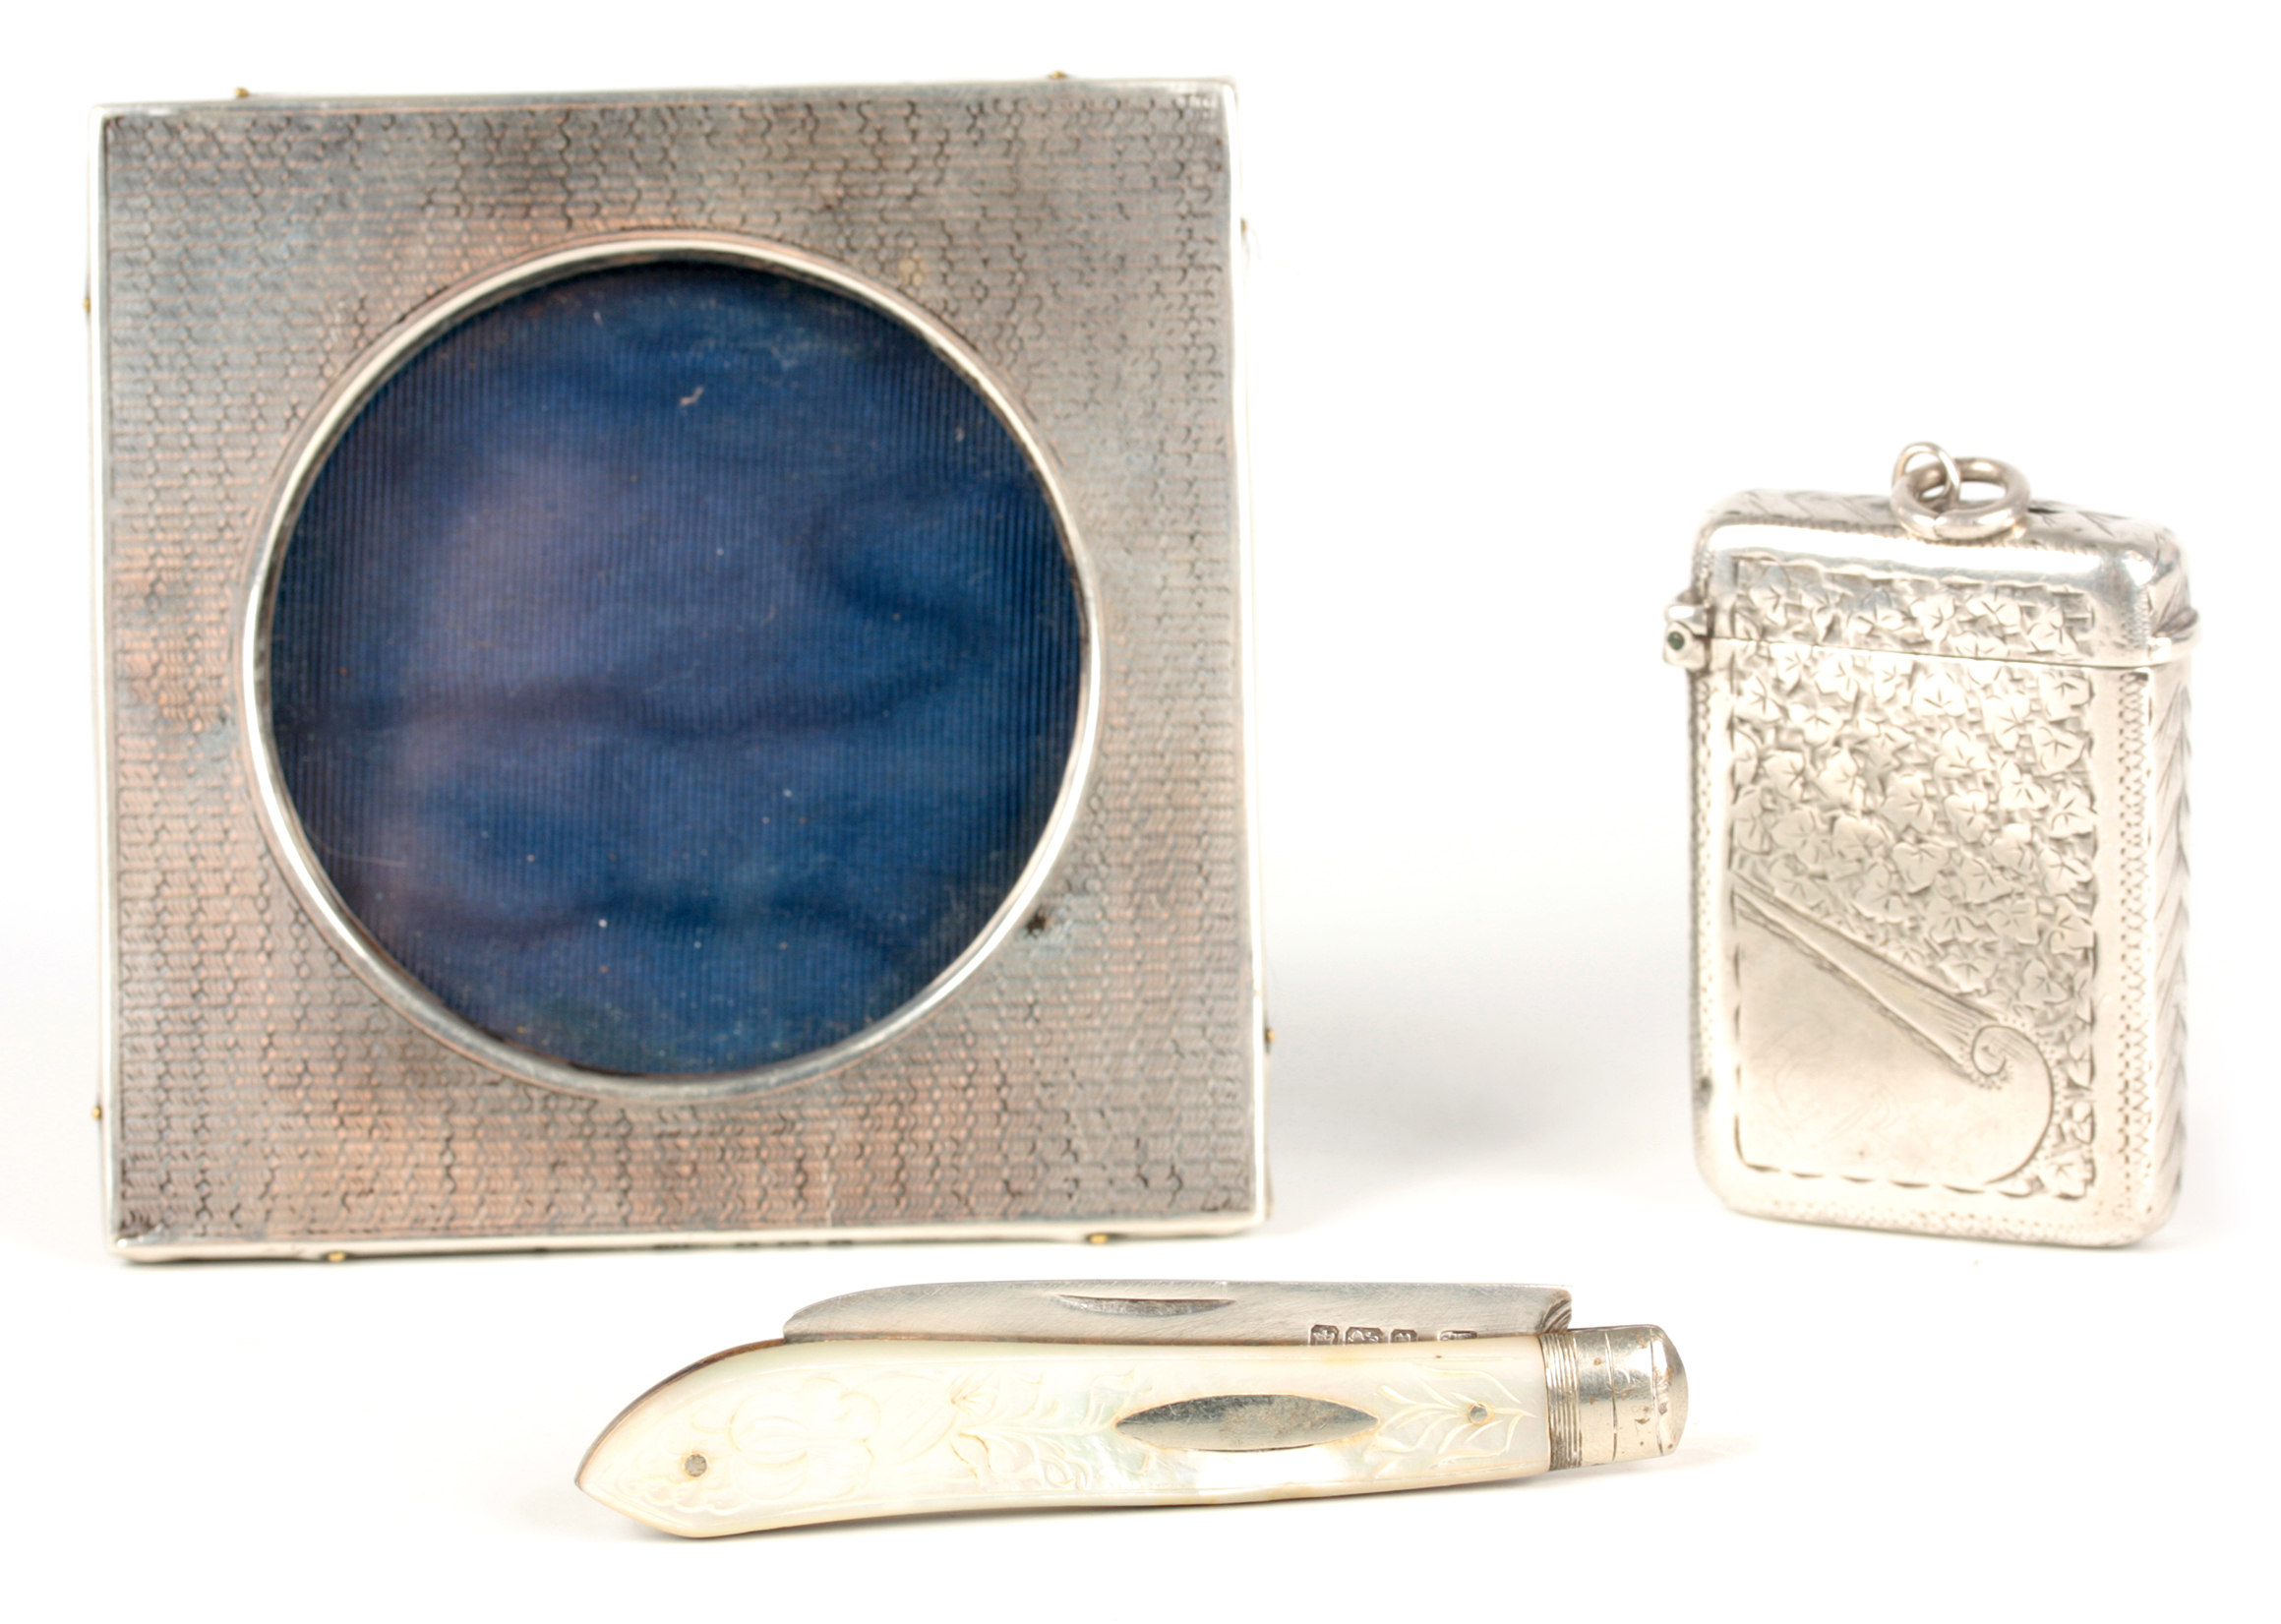 THREE PIECES OF SILVER INCLUDING A SILVER BLADE FRUIT KNIFE WITH MOTHER OF PEARL HANDLE 13cm overall